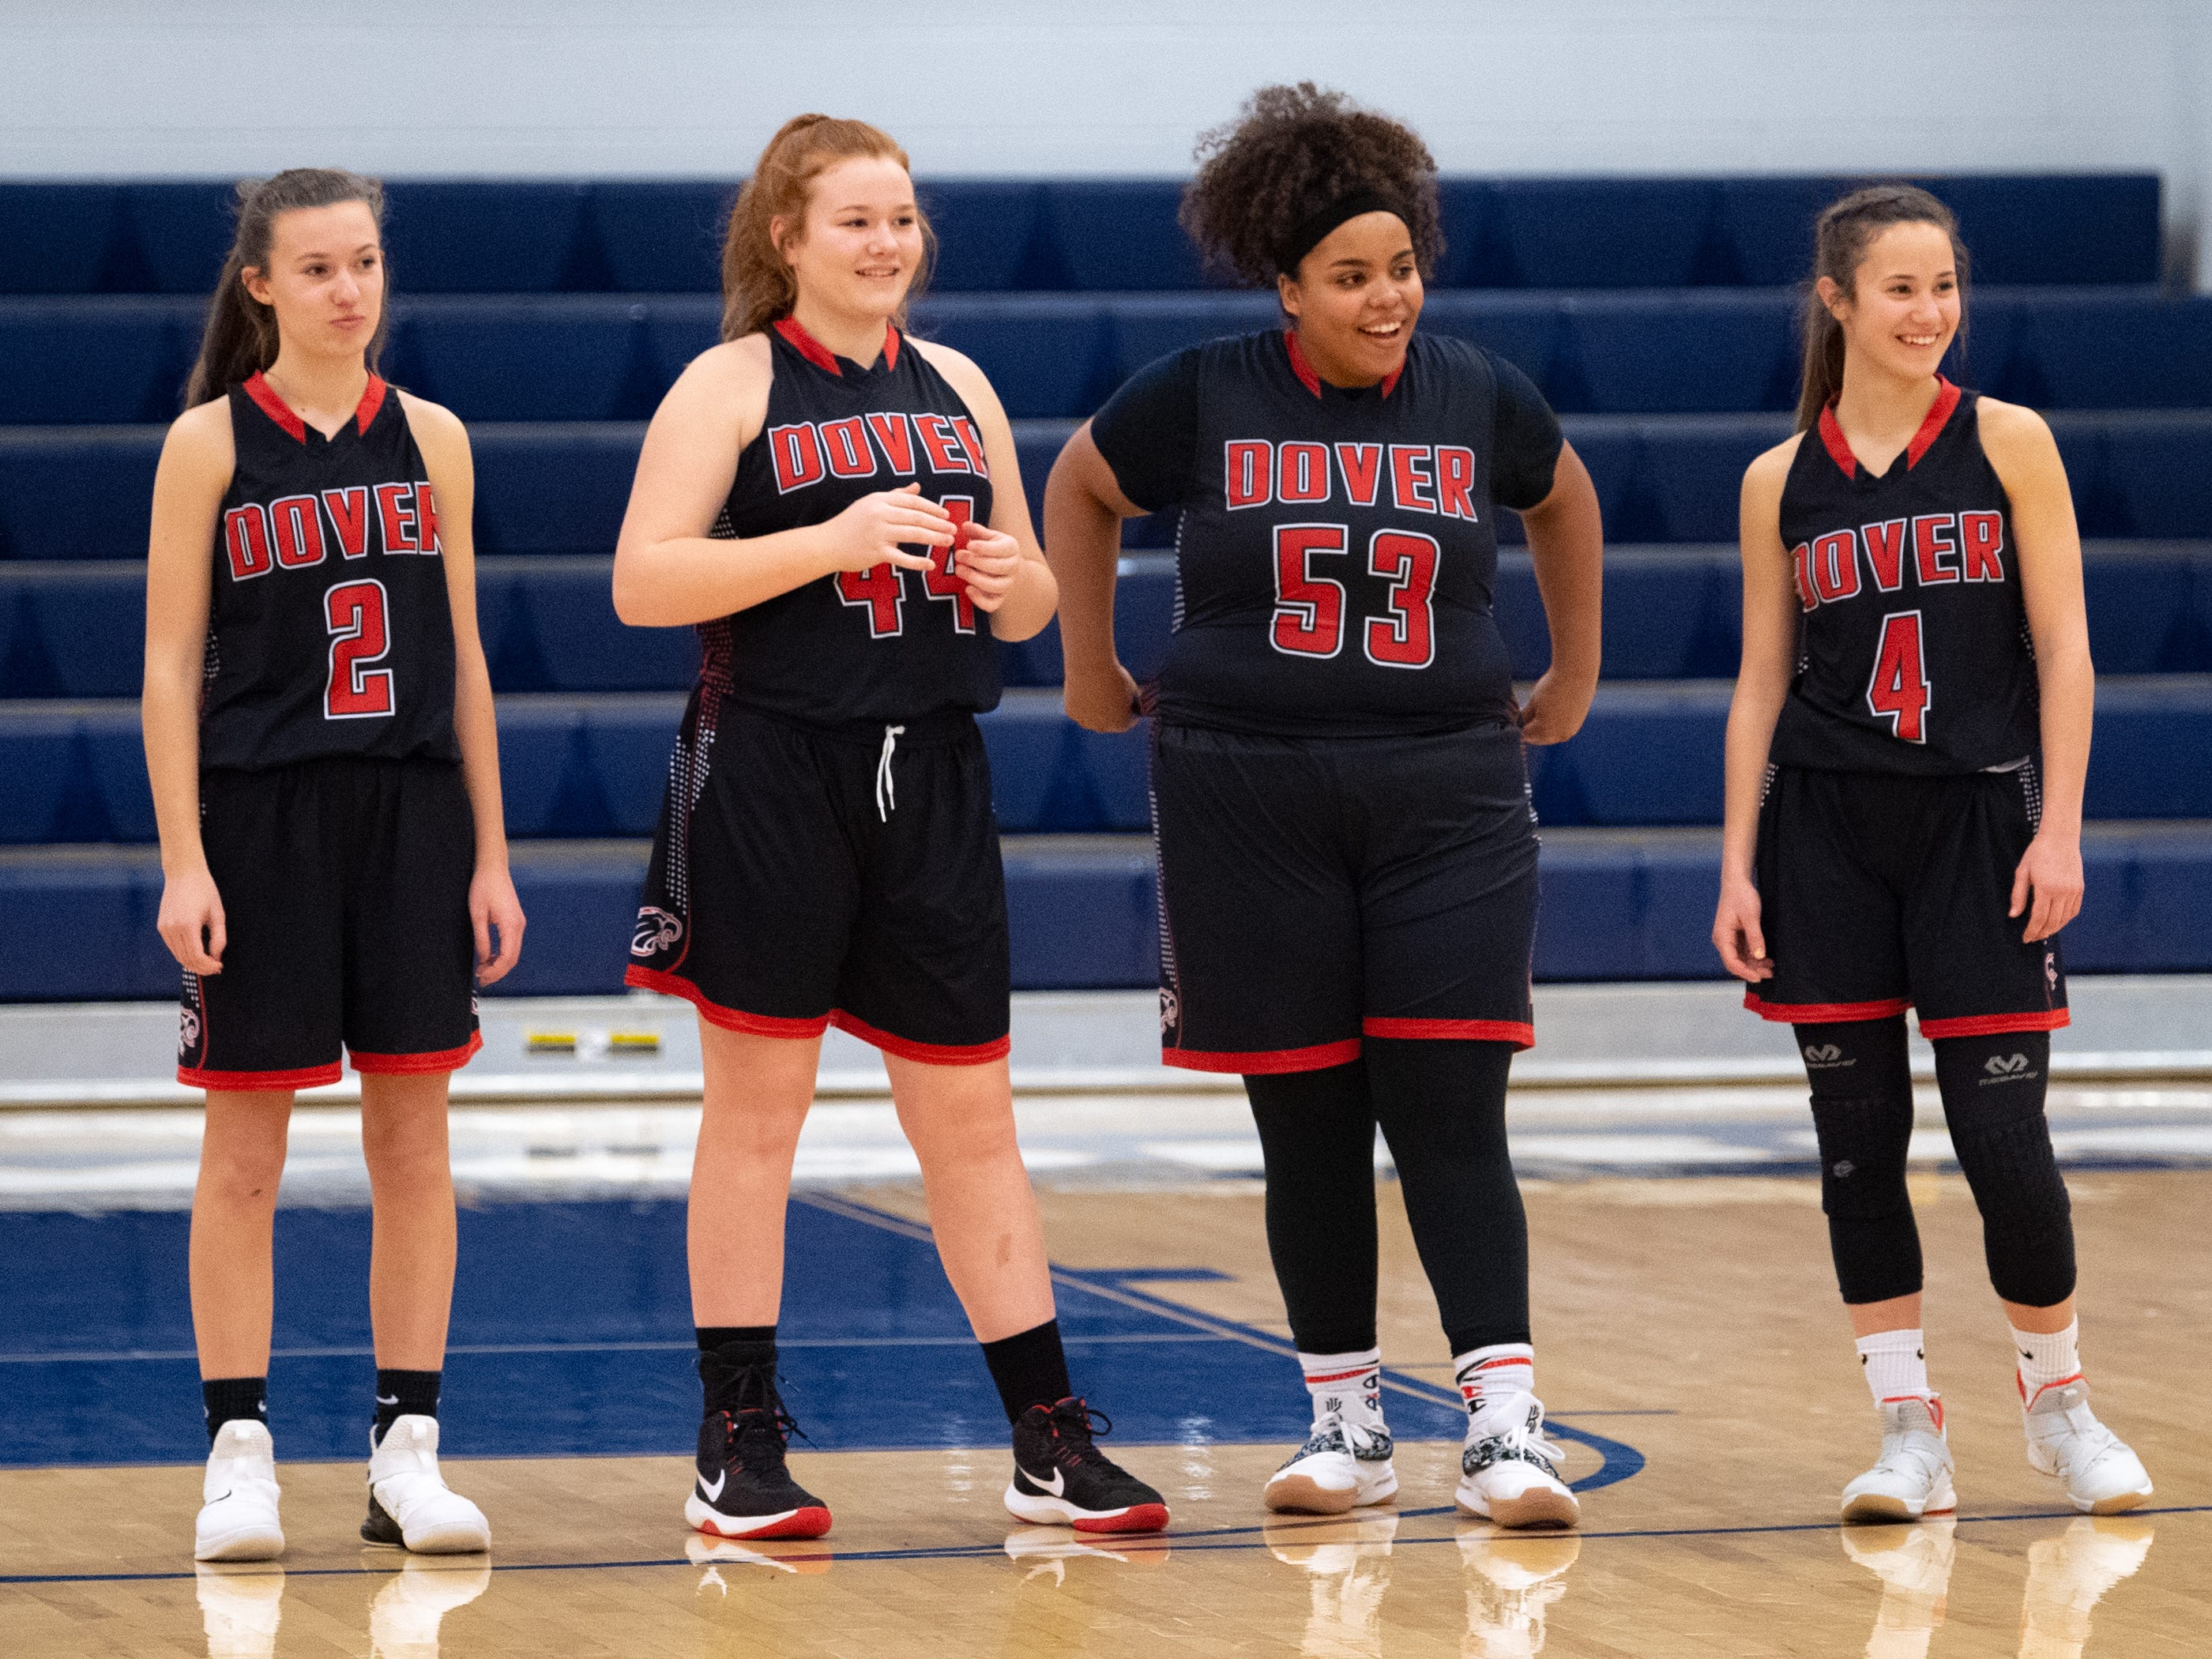 Dover's junior varsity players watch as Katie Kniery takes the first shot of the game, February 1, 2019.